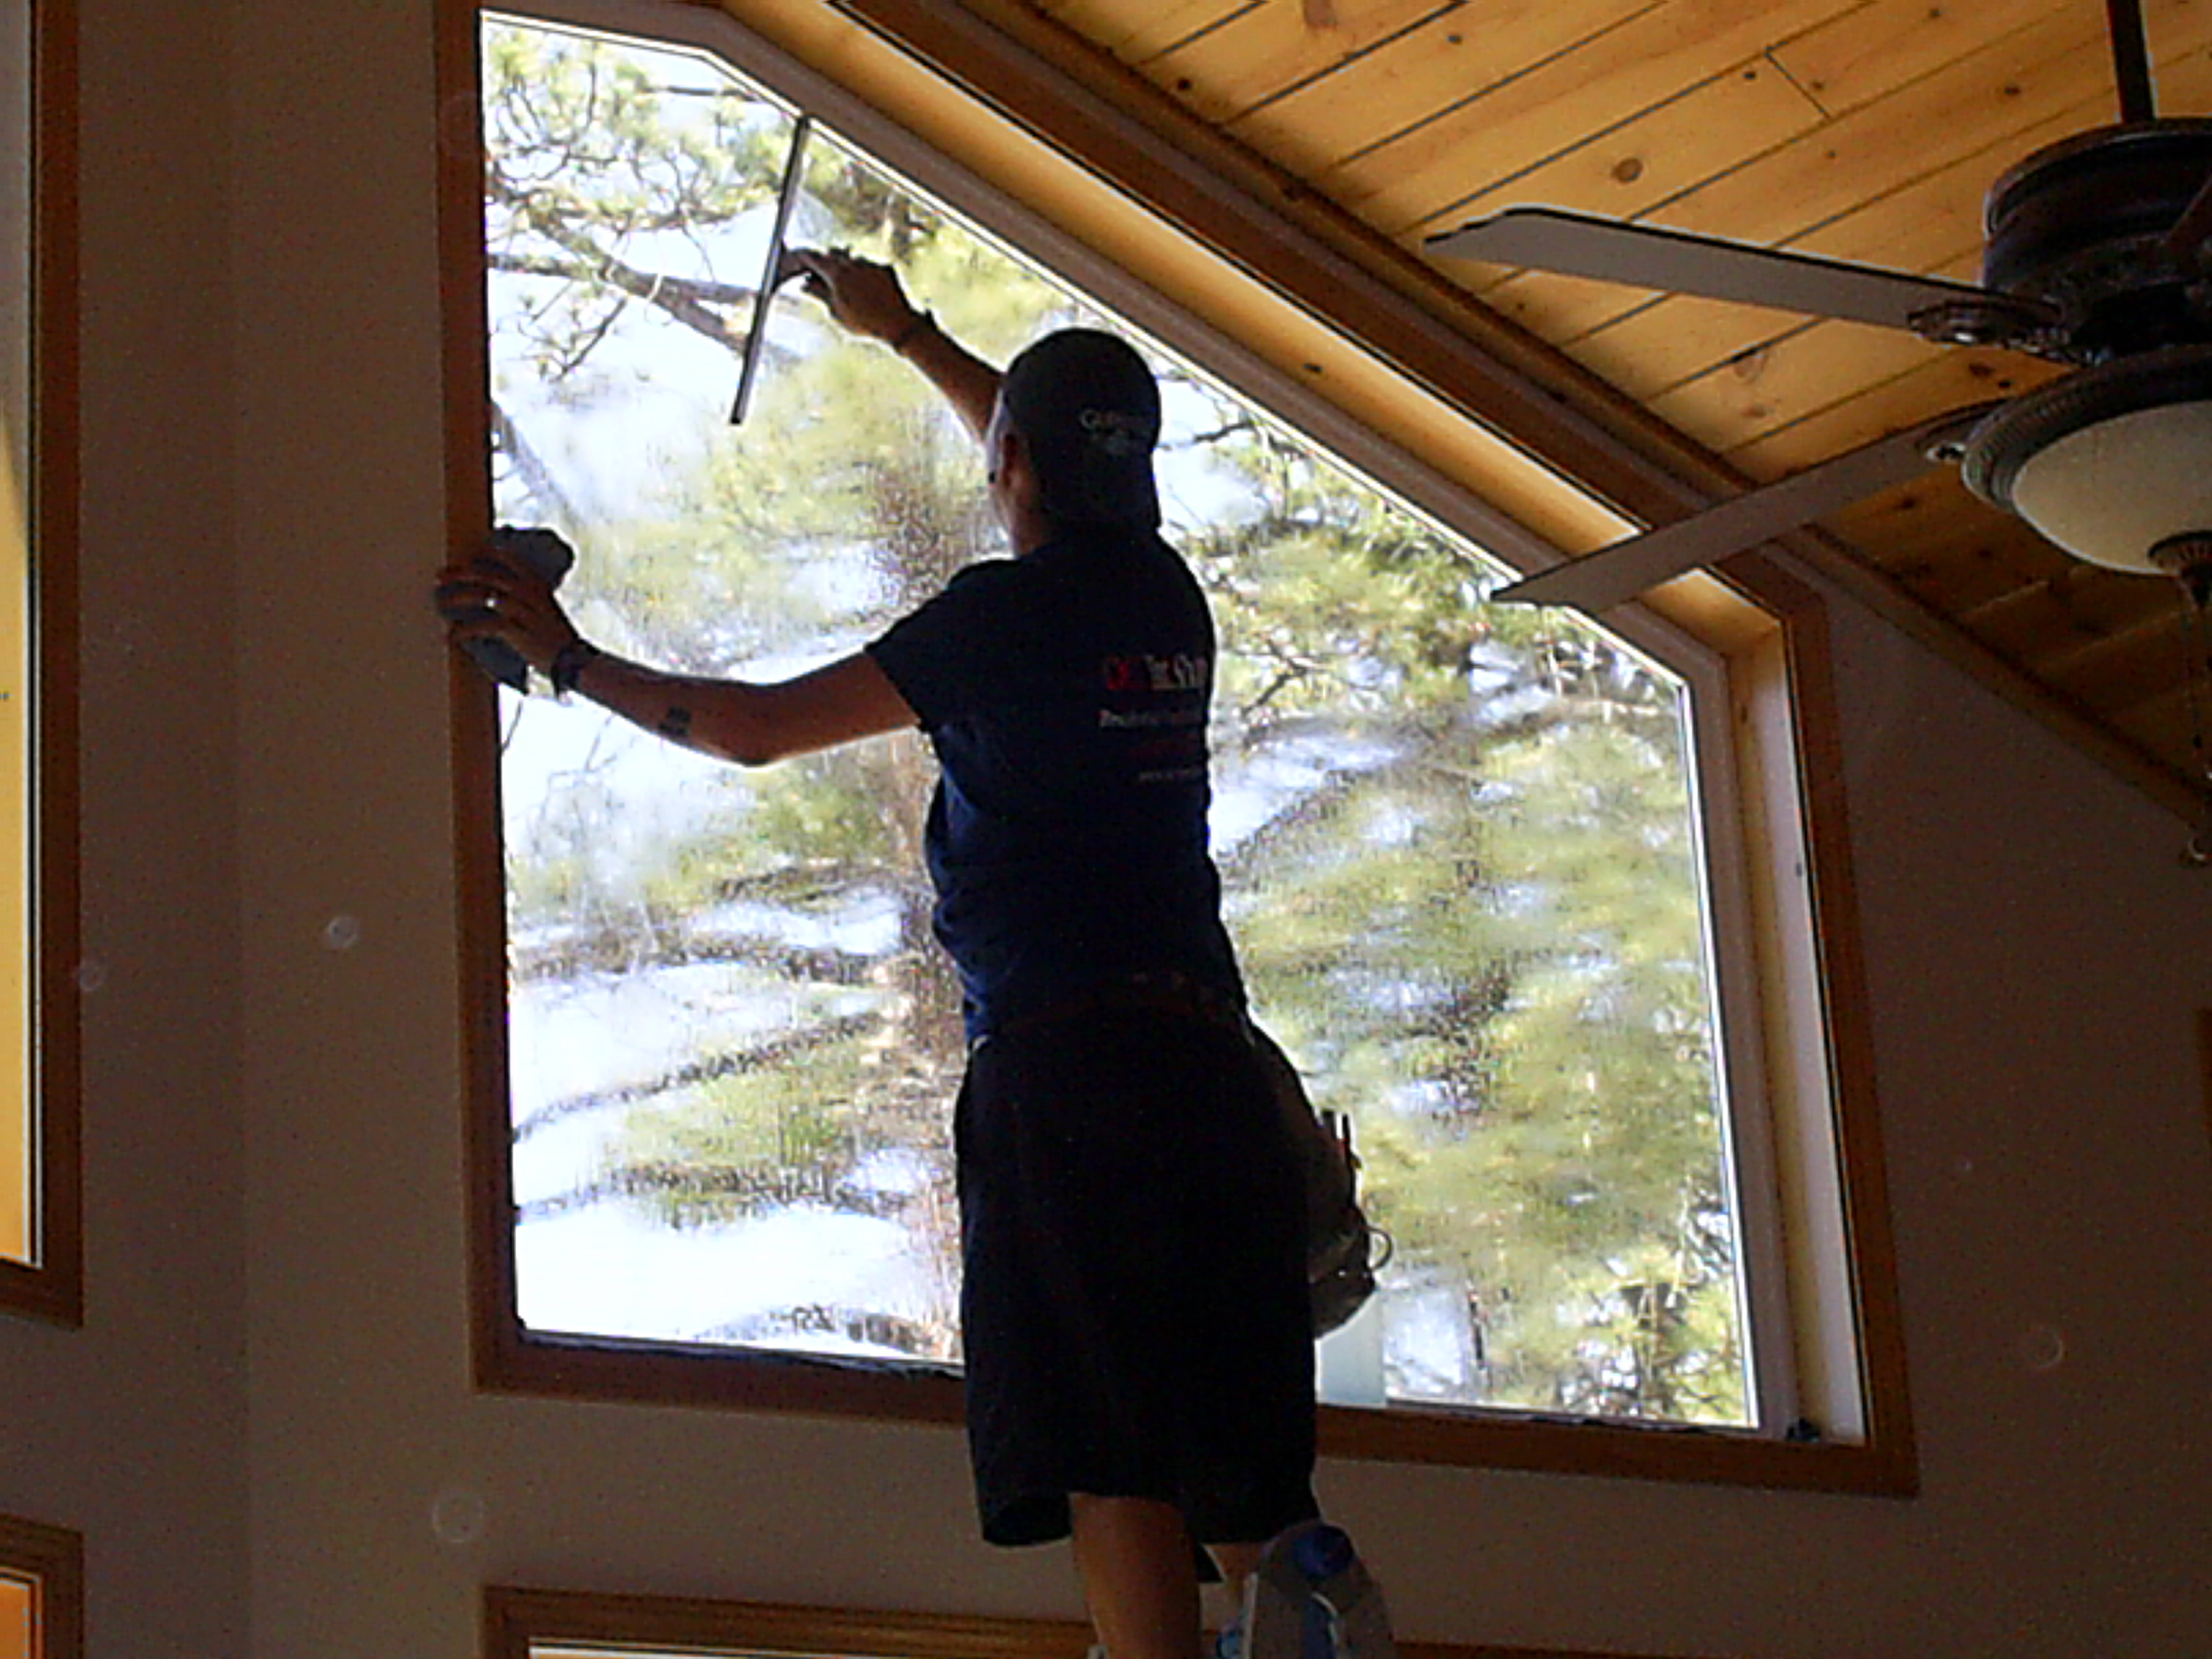 Mobile homes for sale in orange county ca - Orange County Window Tinting Window Tint Oc Orange County Glass Tinting